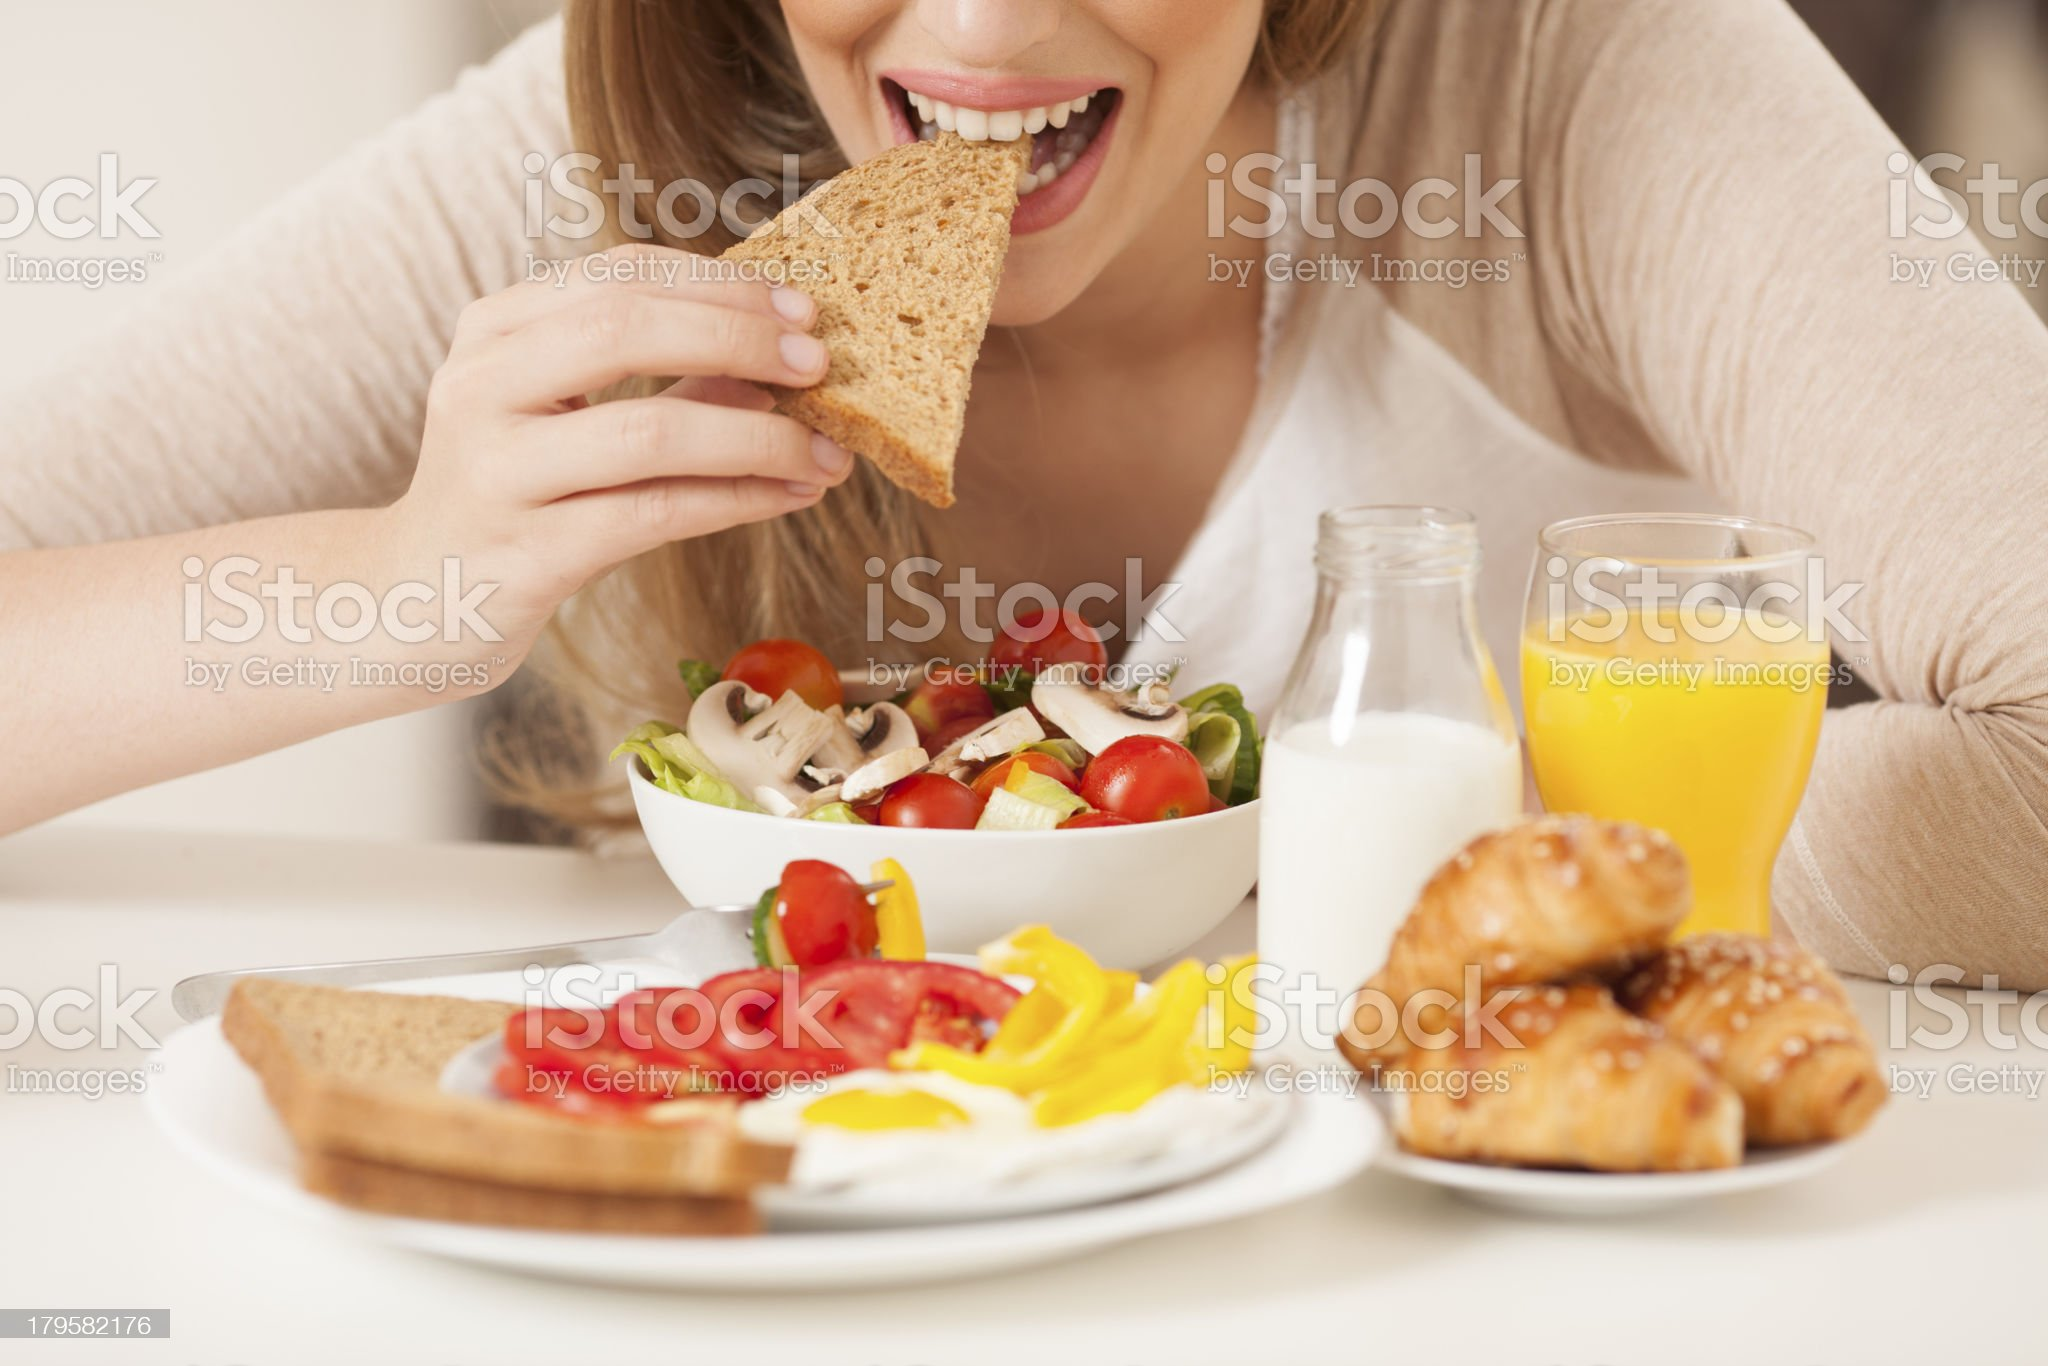 Woman eating healthy breakfast. royalty-free stock photo